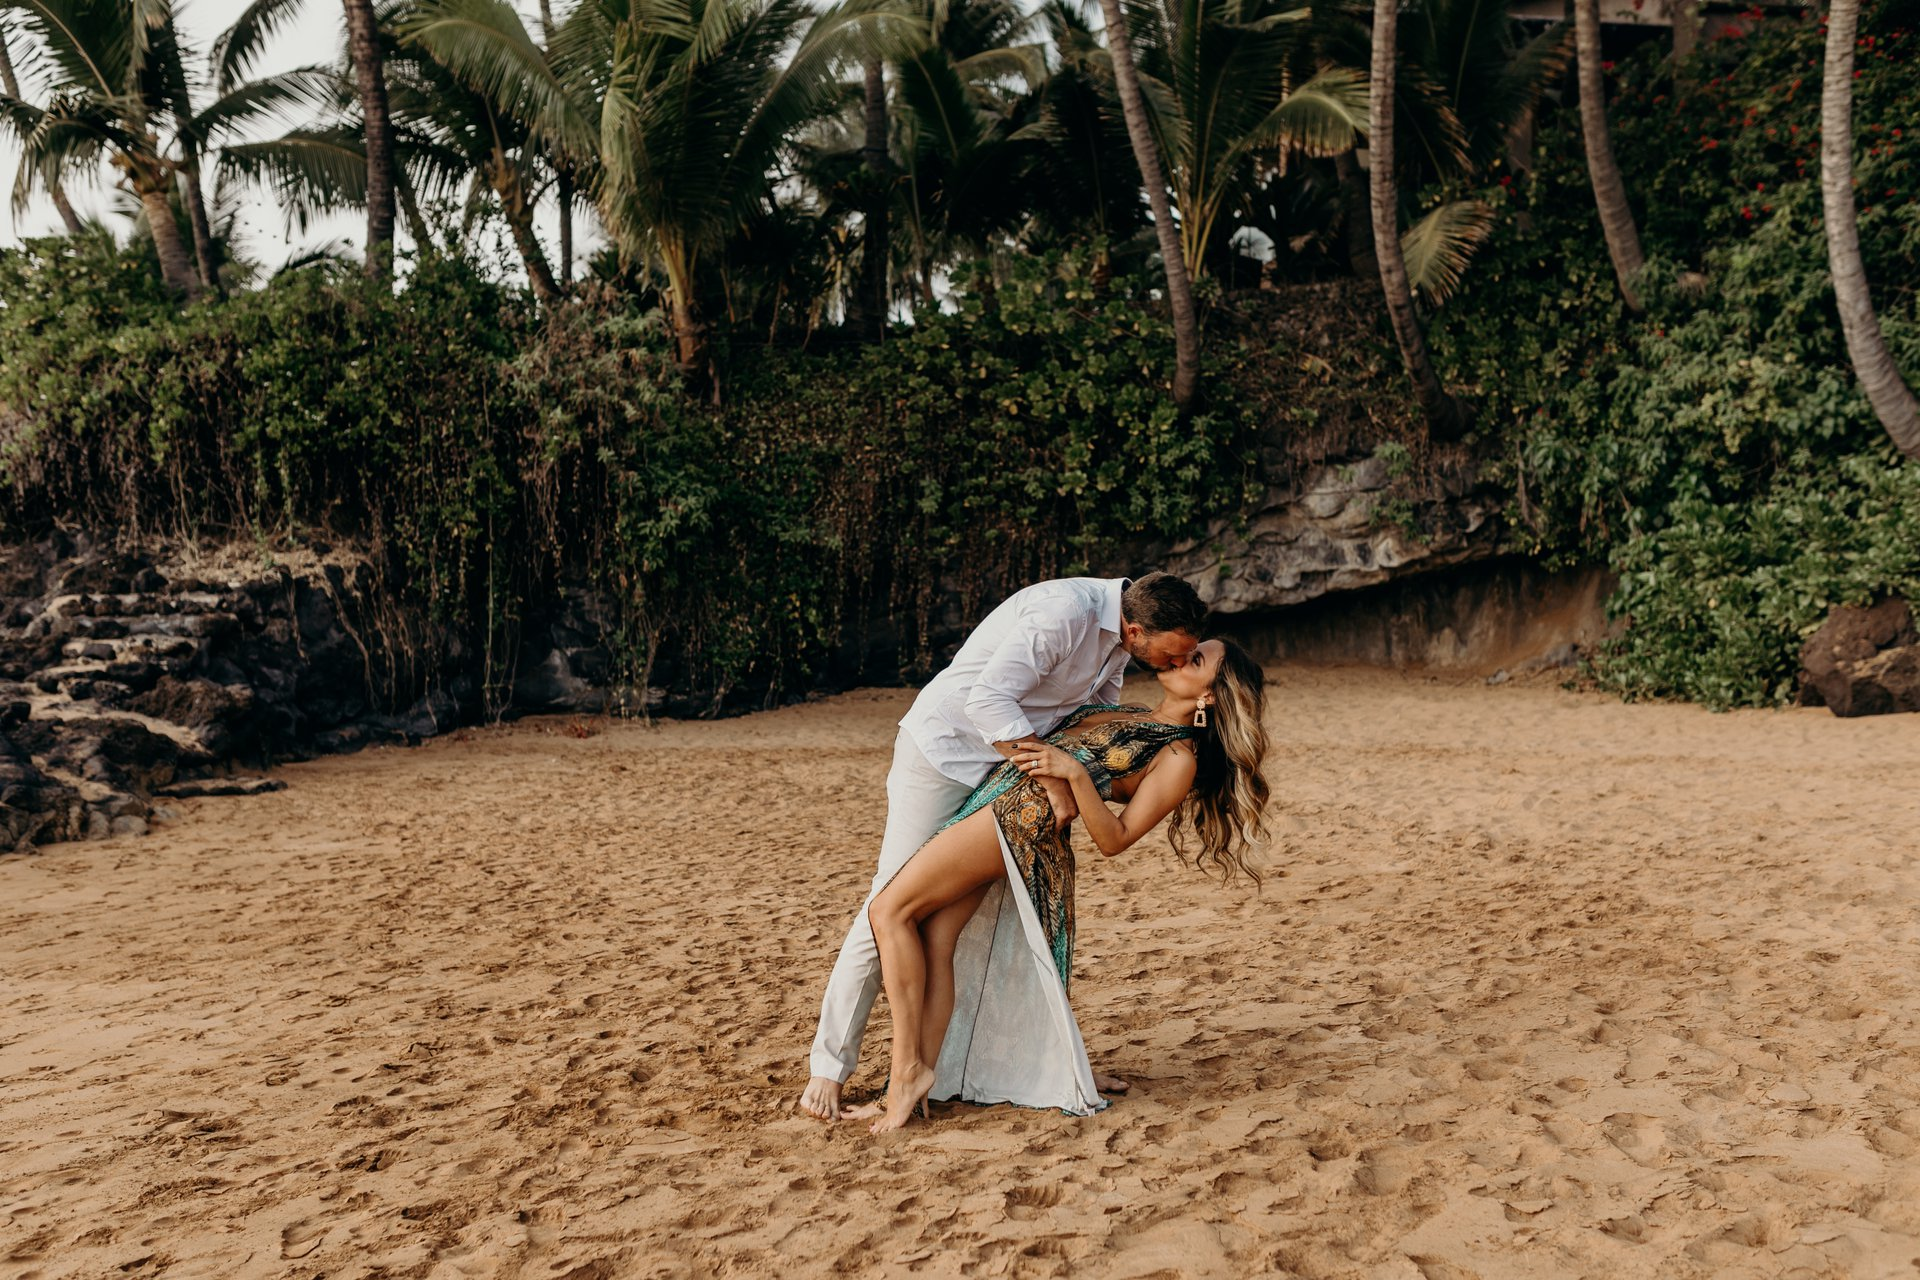 Flytographer Travel Story - Our Magical Vacation on Maui